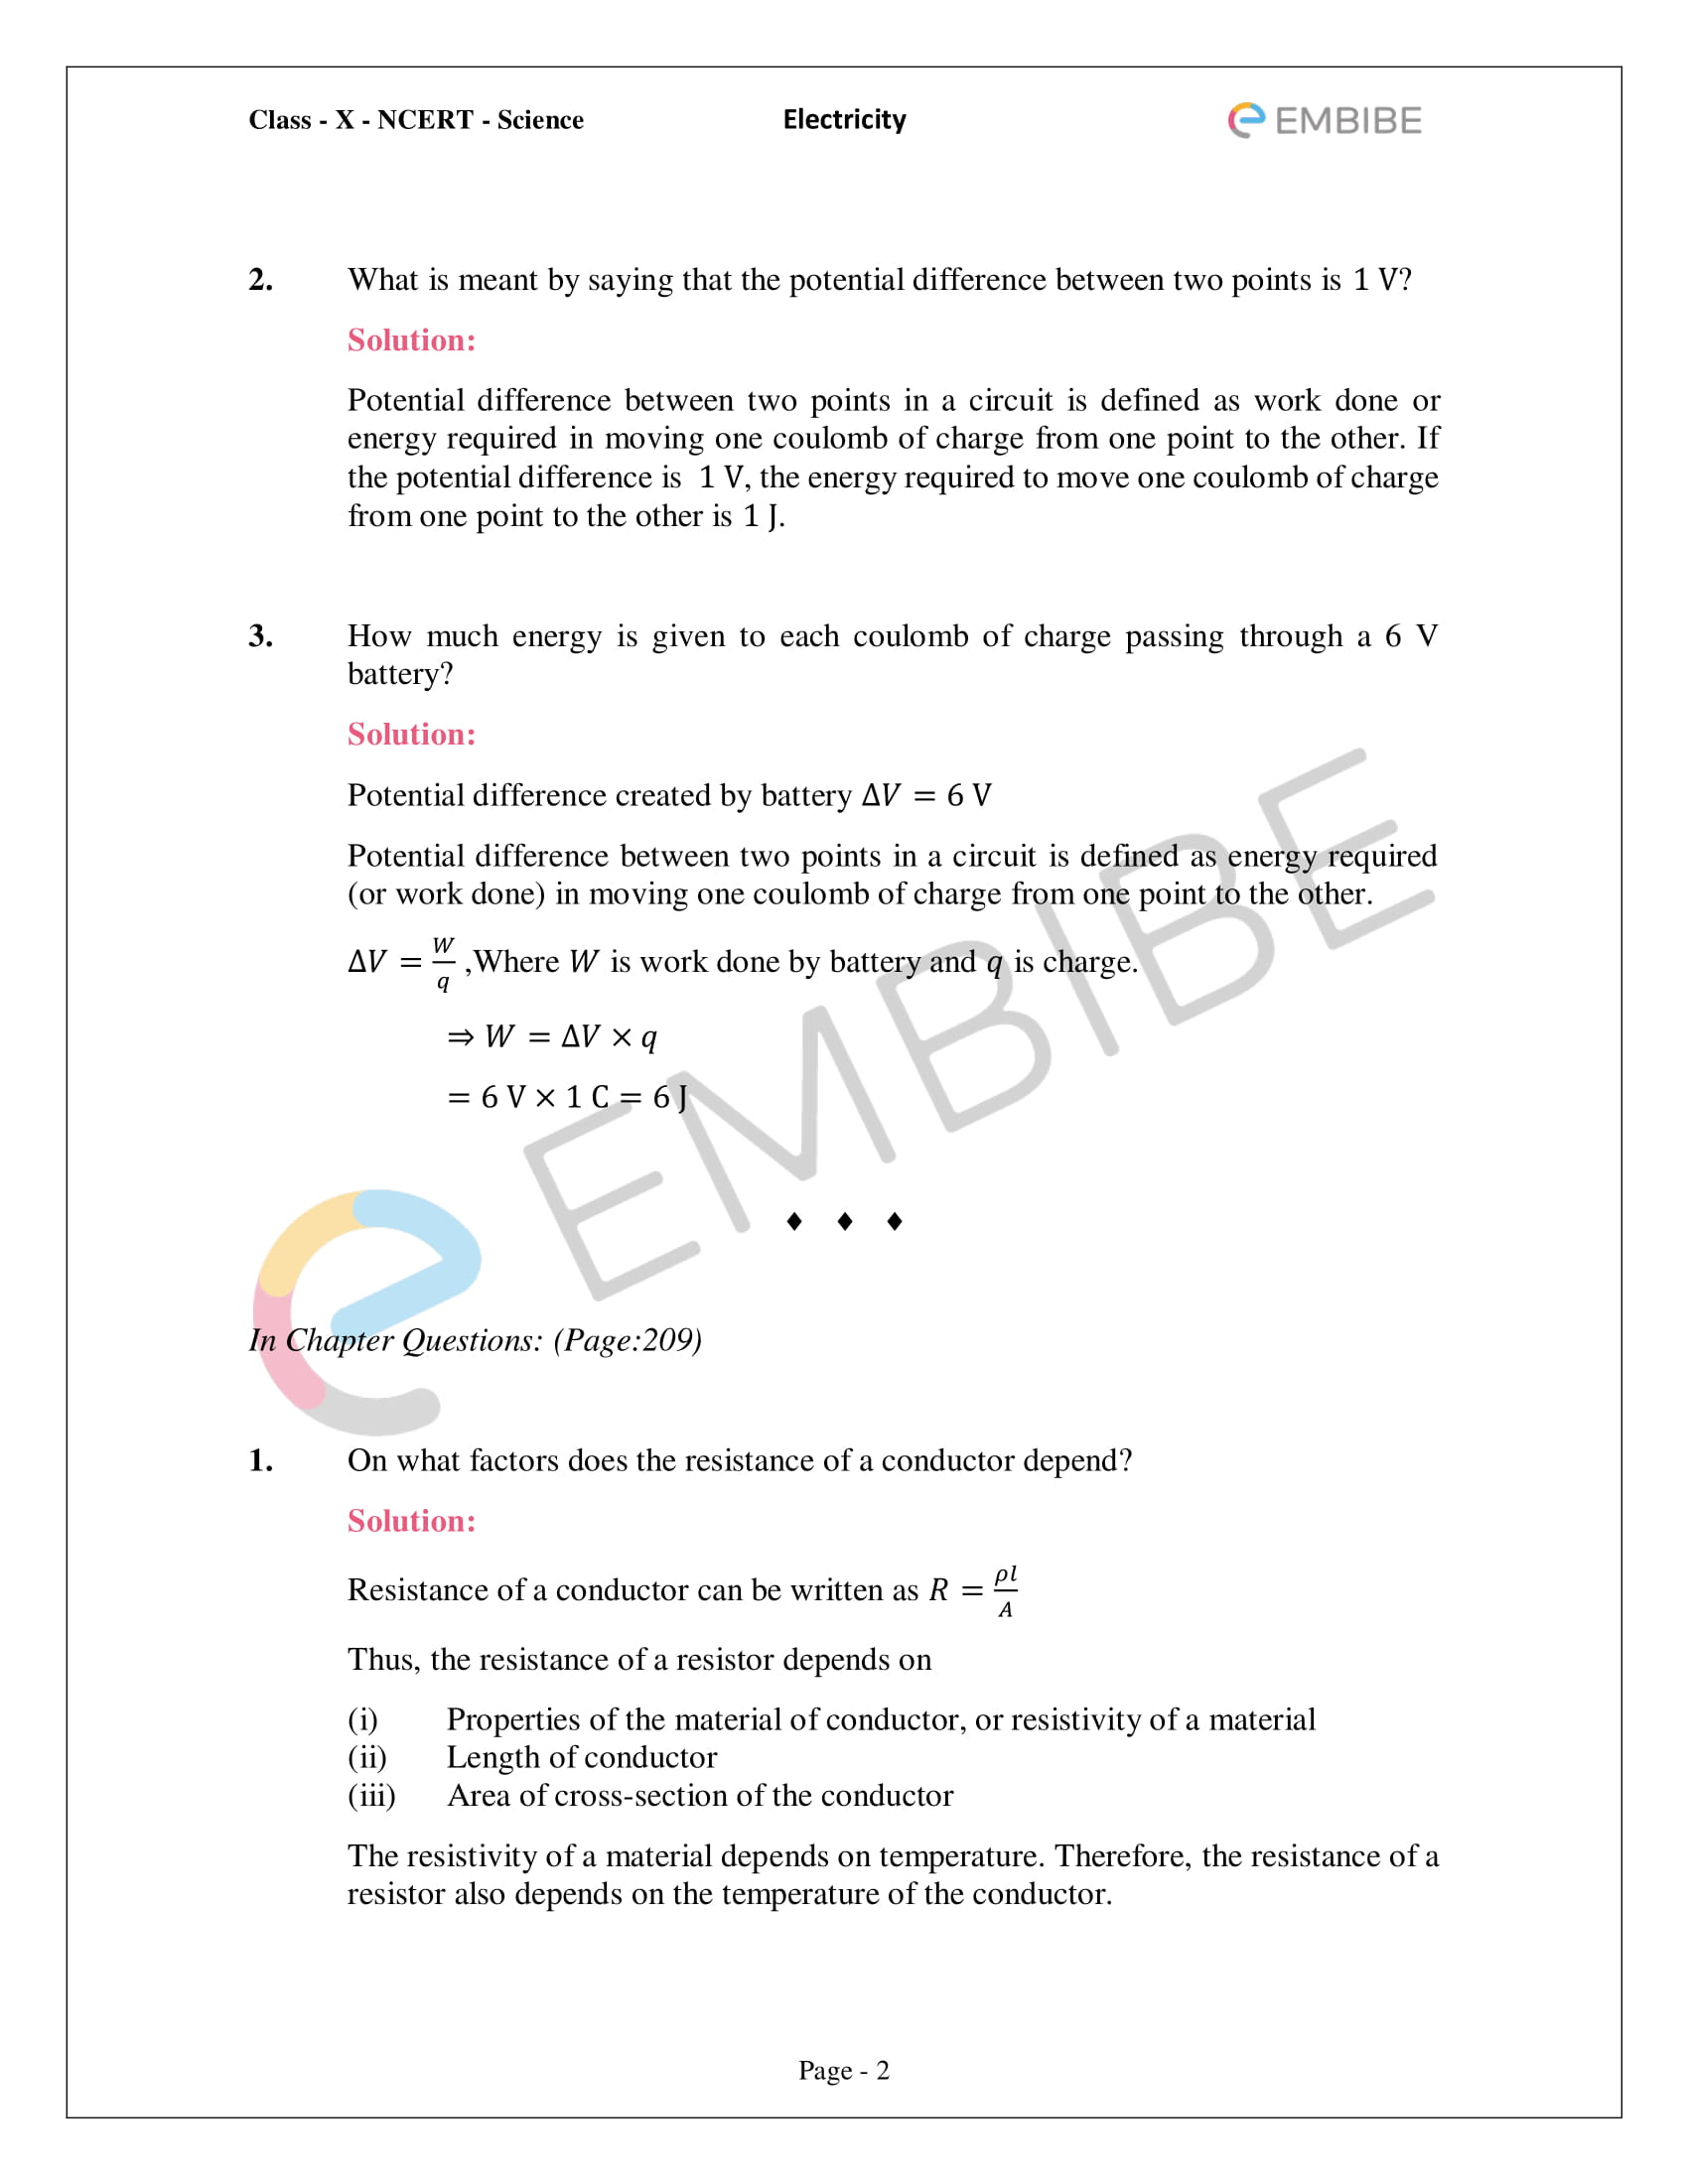 CBSE NCERT Solutions For Class 10 Science Chapter 12 - Electricity - 2